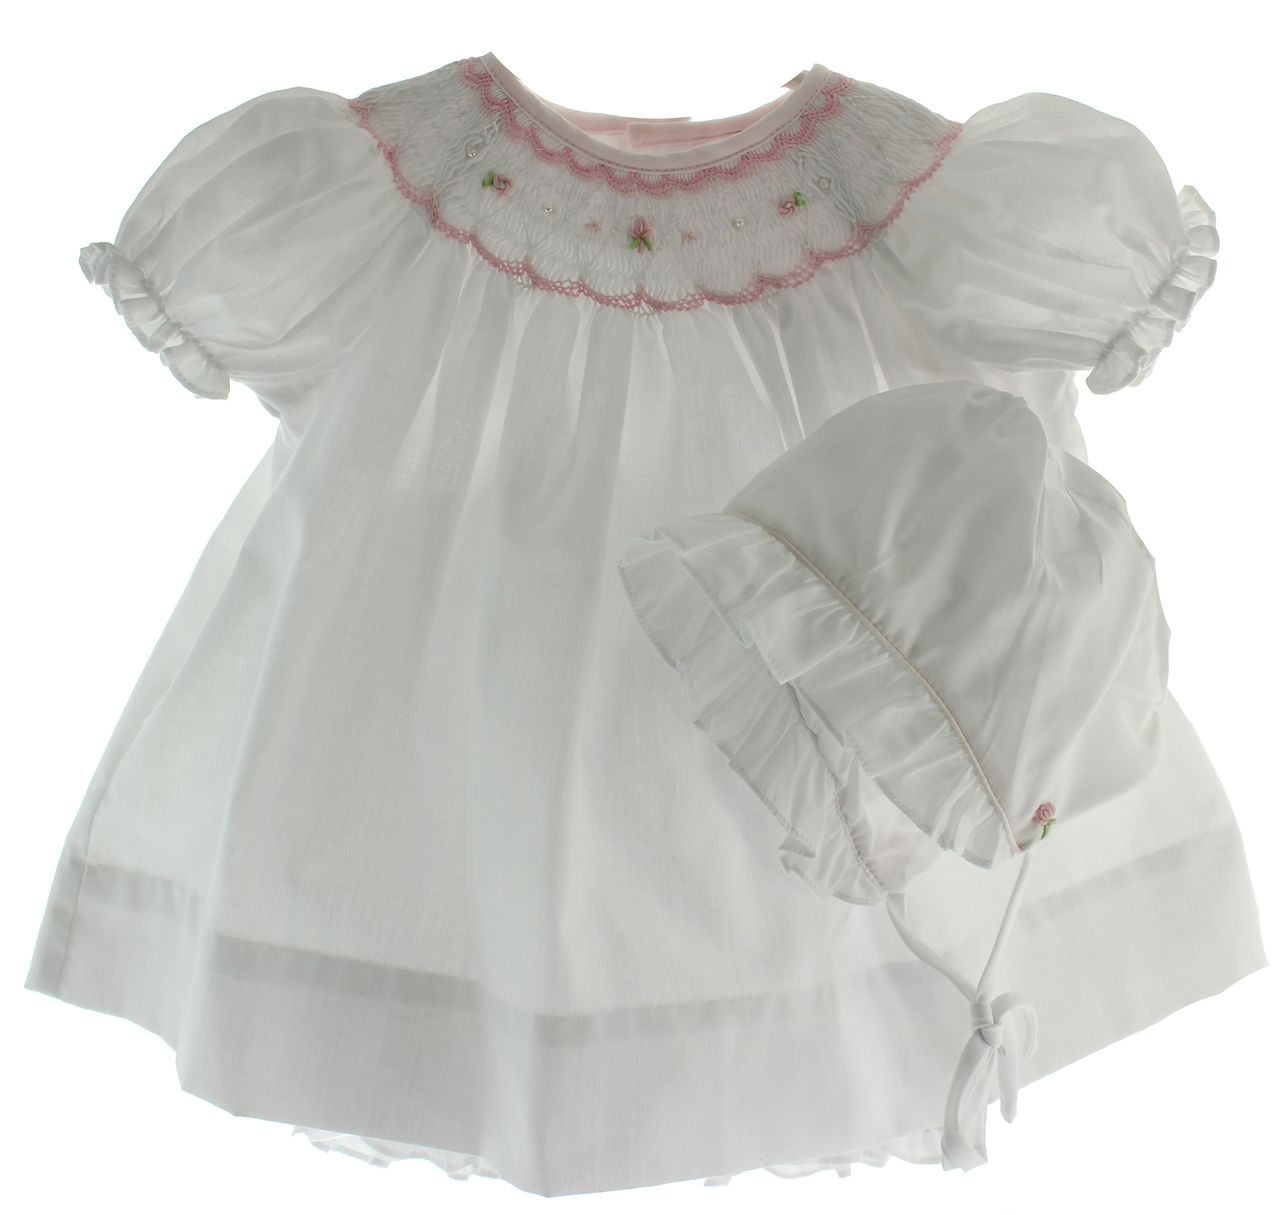 Size 0, size small by Will Beth White Smocked Baby Bonnet